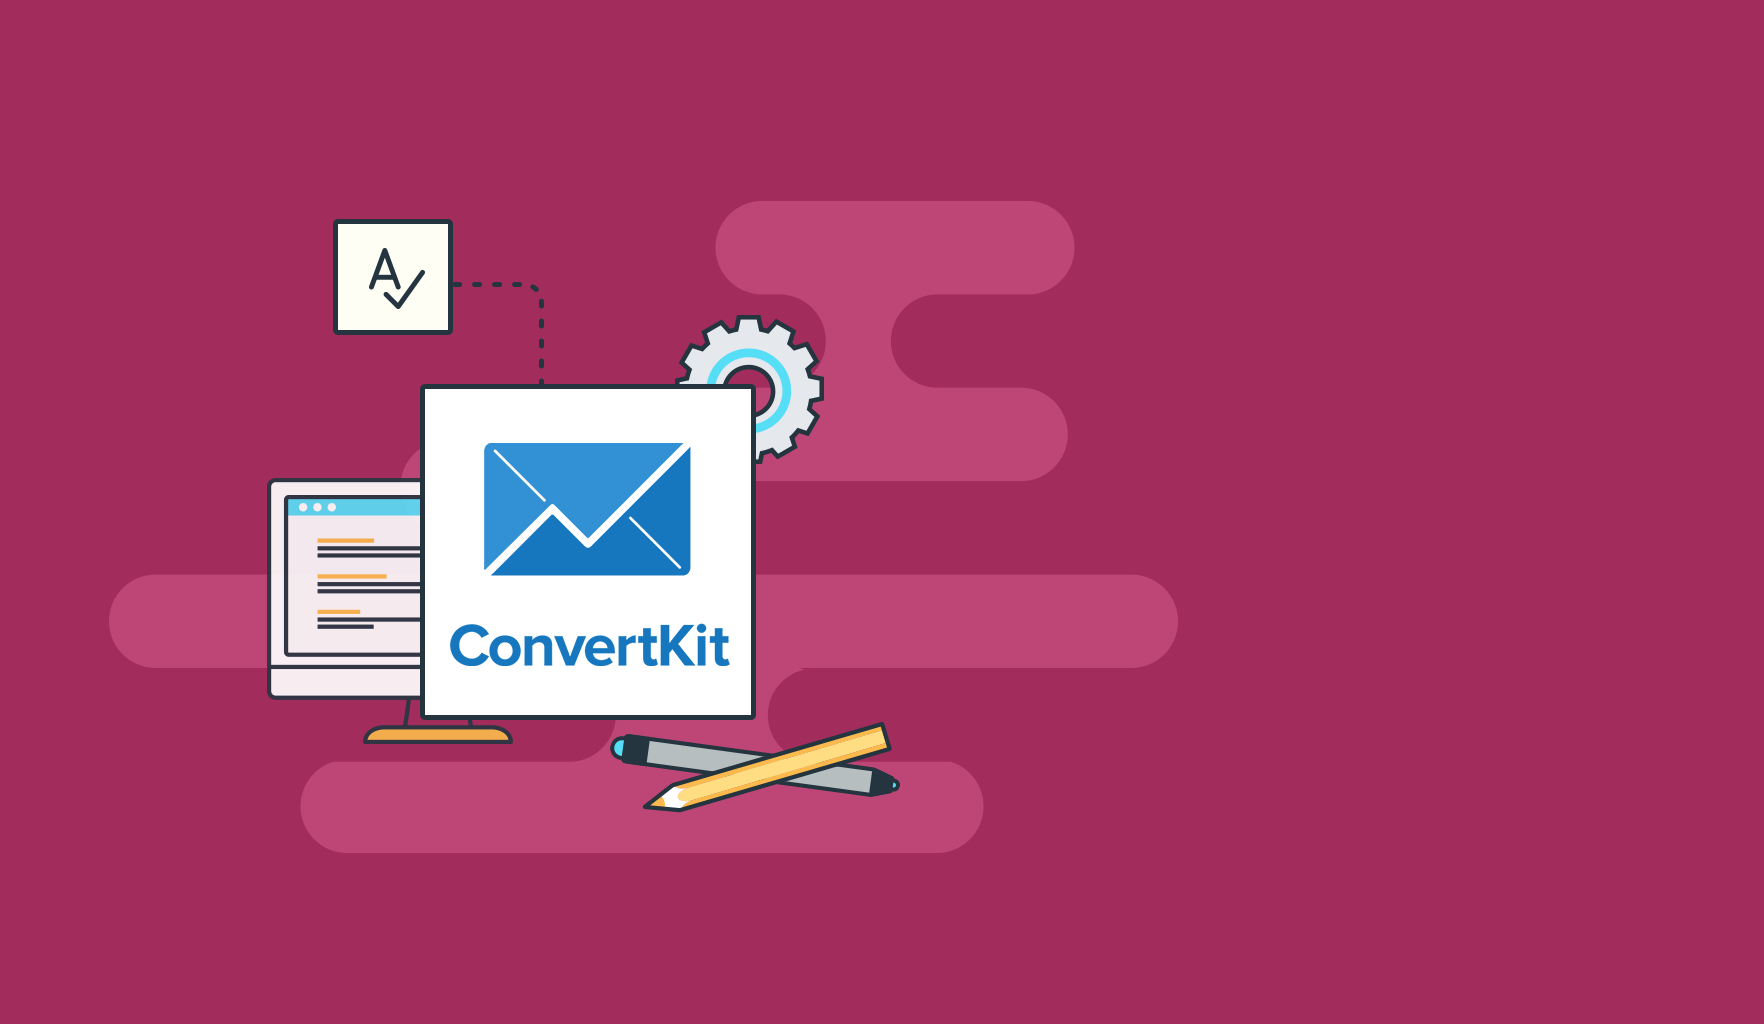 How Many Customers Does Convertkit Have